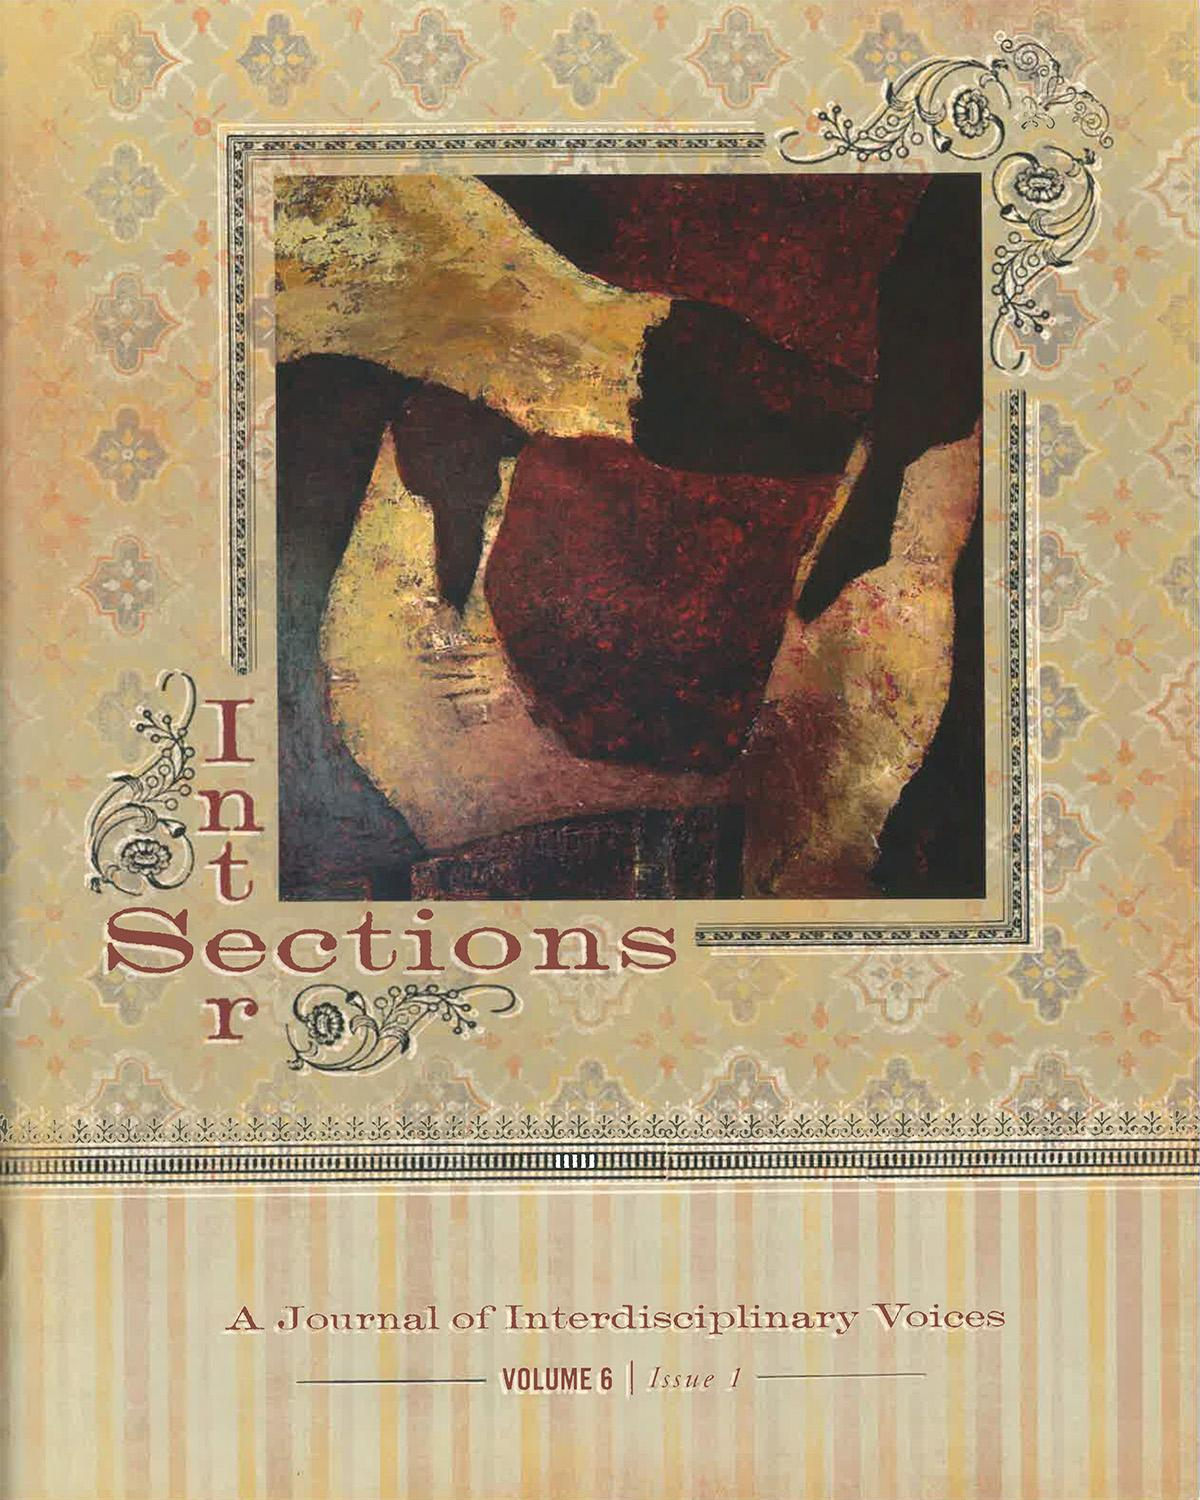 Intersections Volume 6 Issue 1